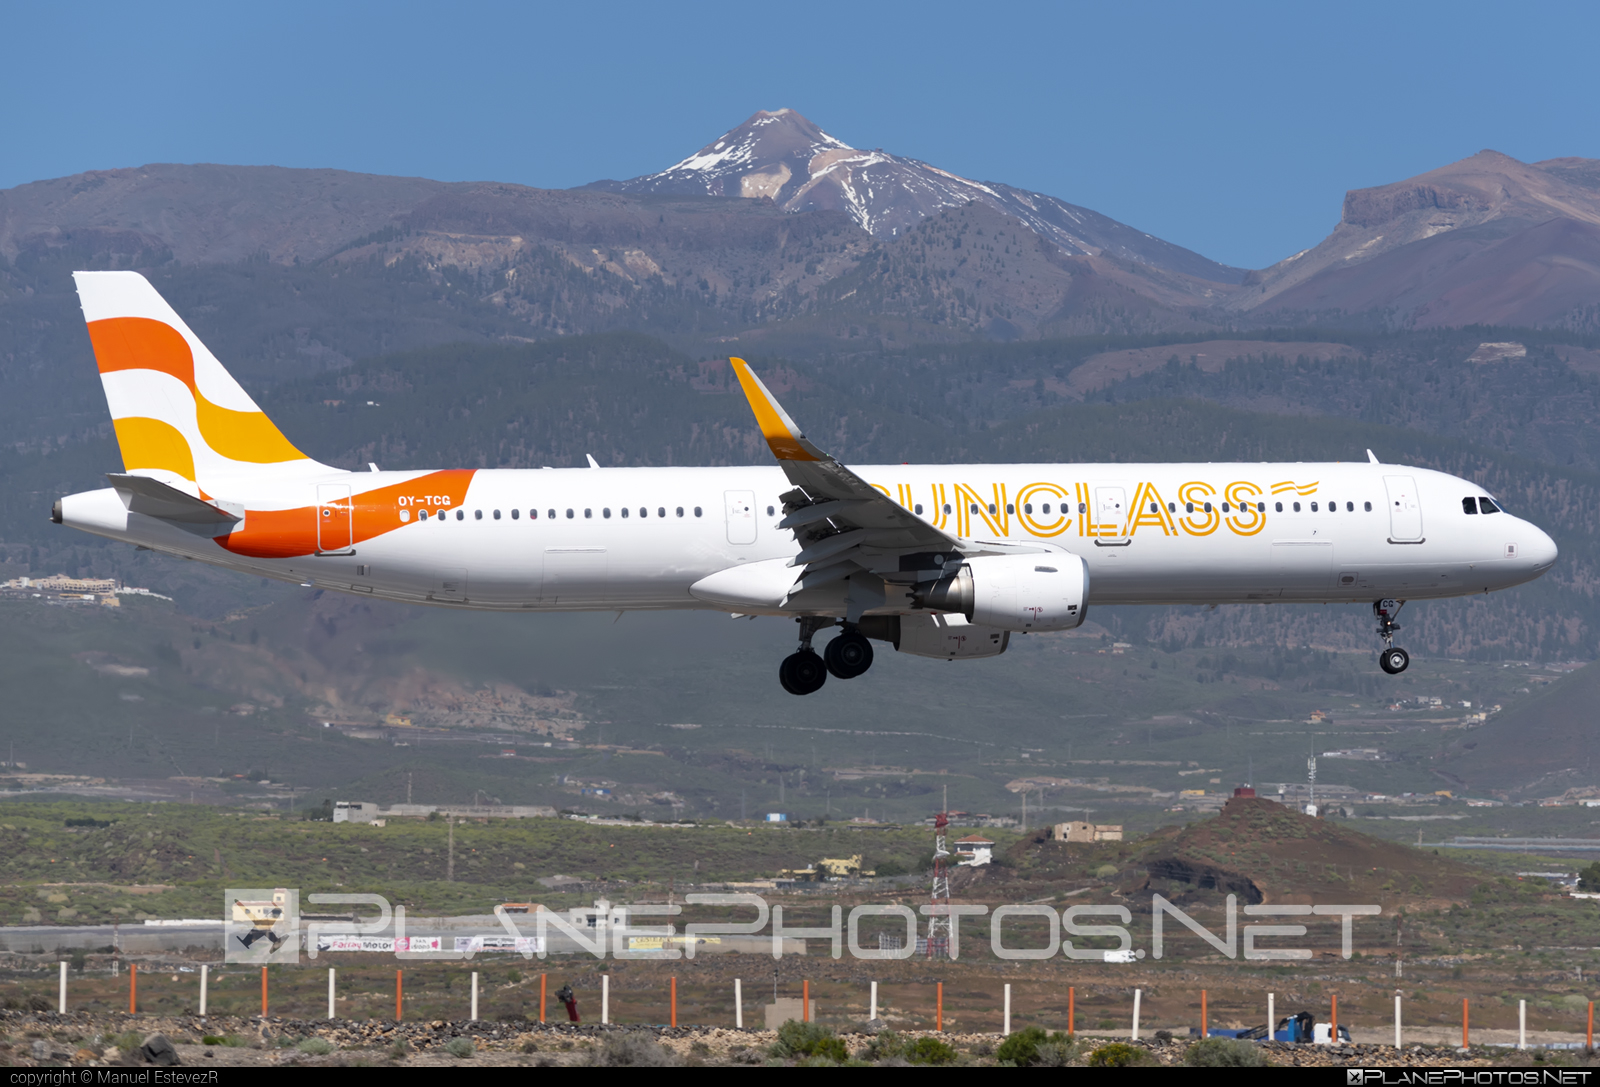 Airbus A321-211 - OY-TCG operated by Sunclass Airlines #SunclassAirlines #a320family #a321 #airbus #airbus321